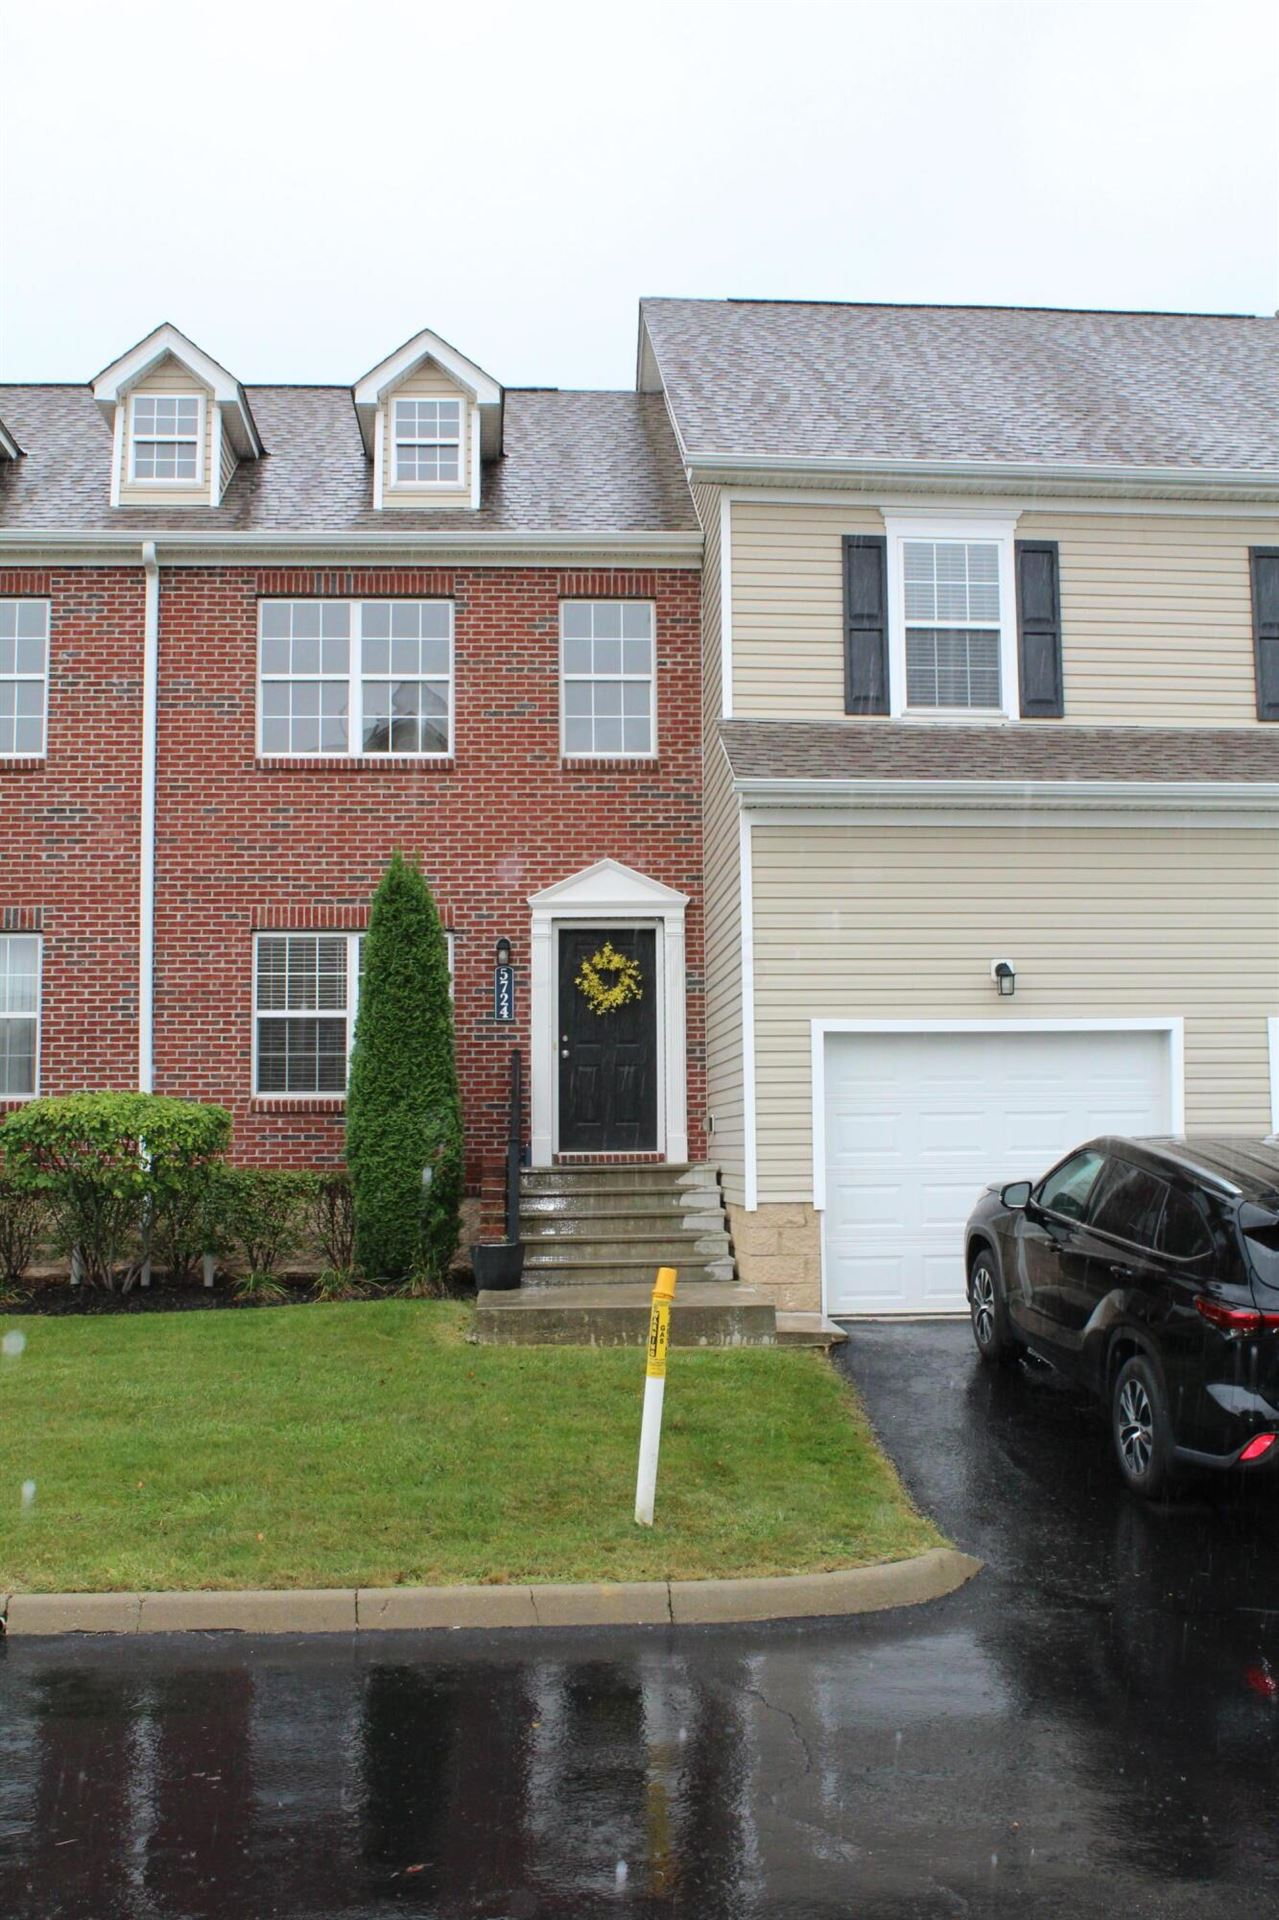 Photo of 5724 Winding Rock Drive, Westerville, OH 43081 (MLS # 221036621)